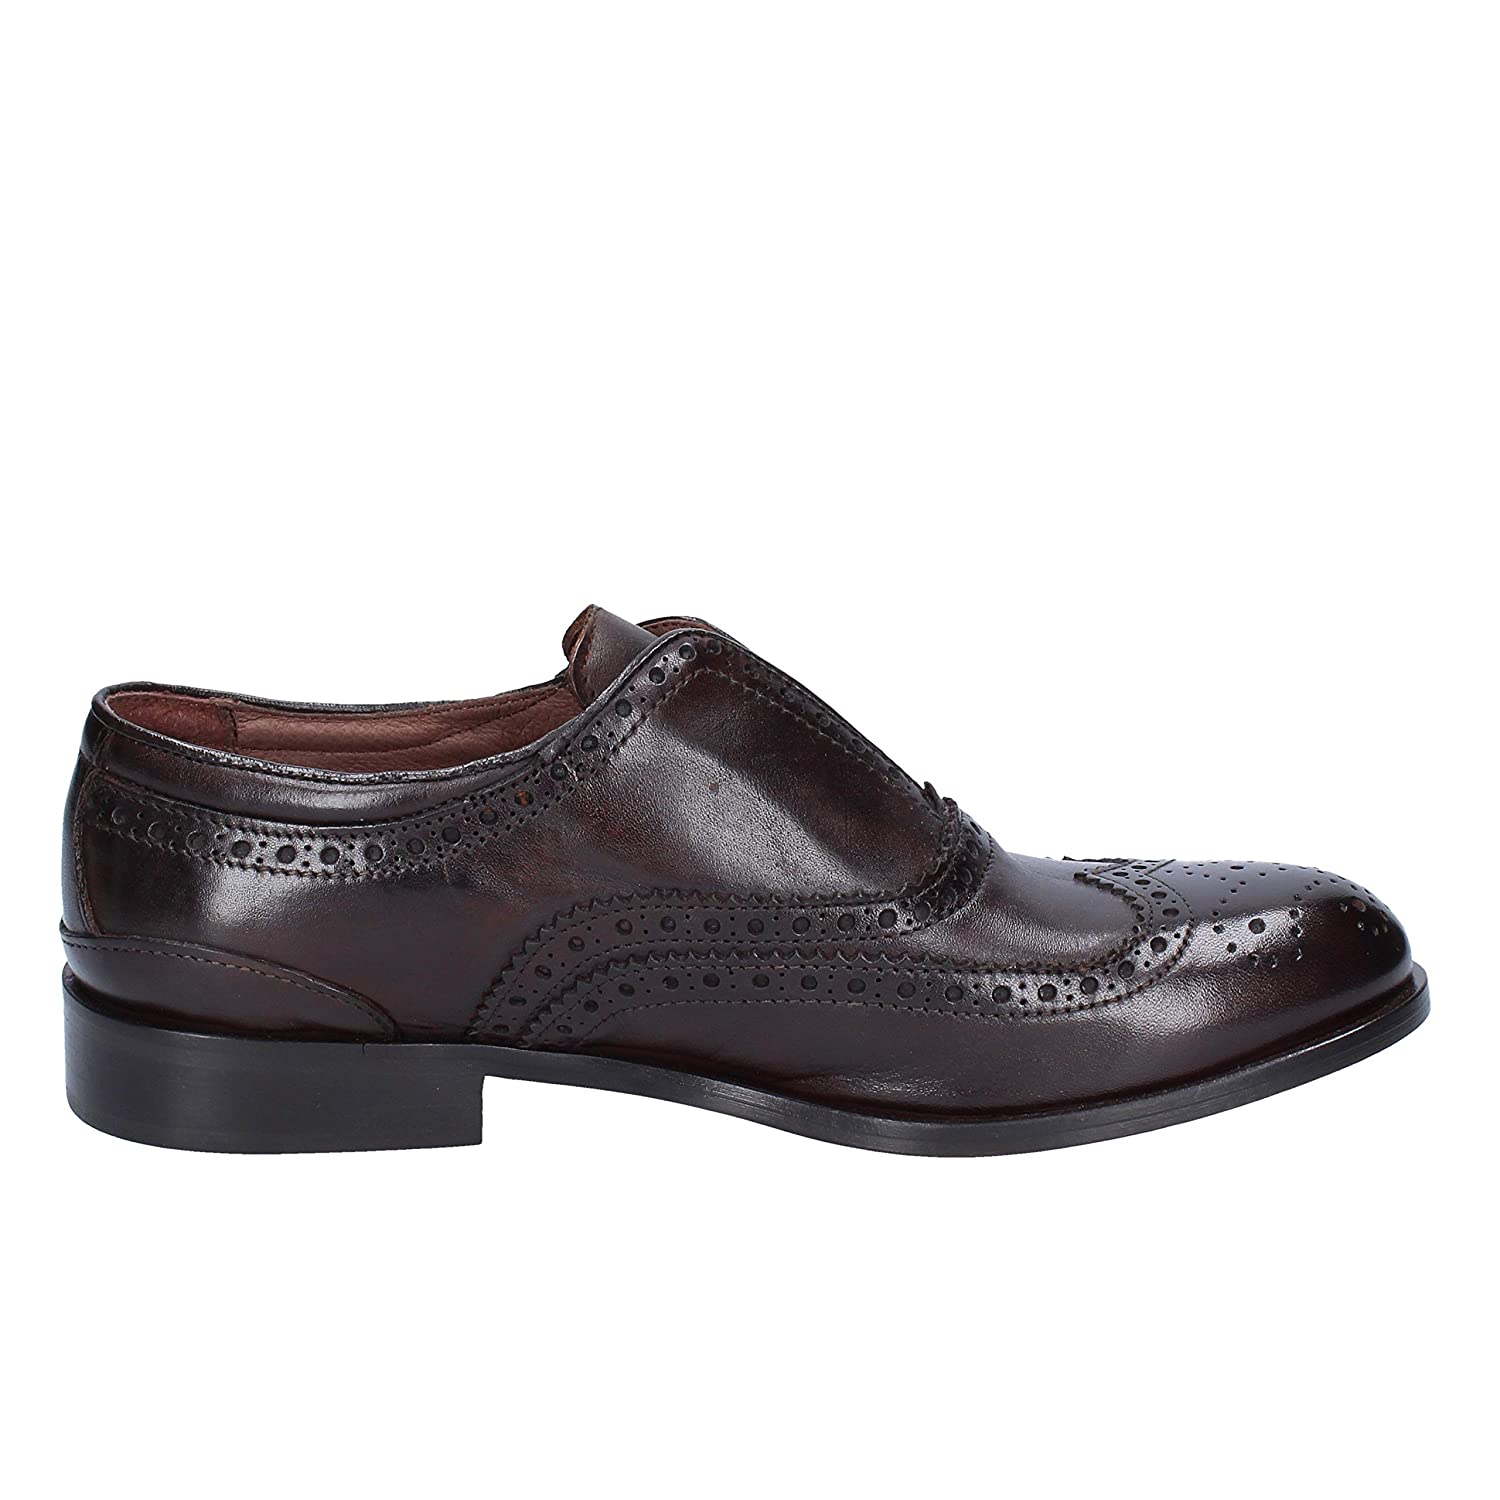 Details about  /Mens Round Toe Low Top Slip On Genuine Leather Leisure Leather Oxfords Shoes Hot